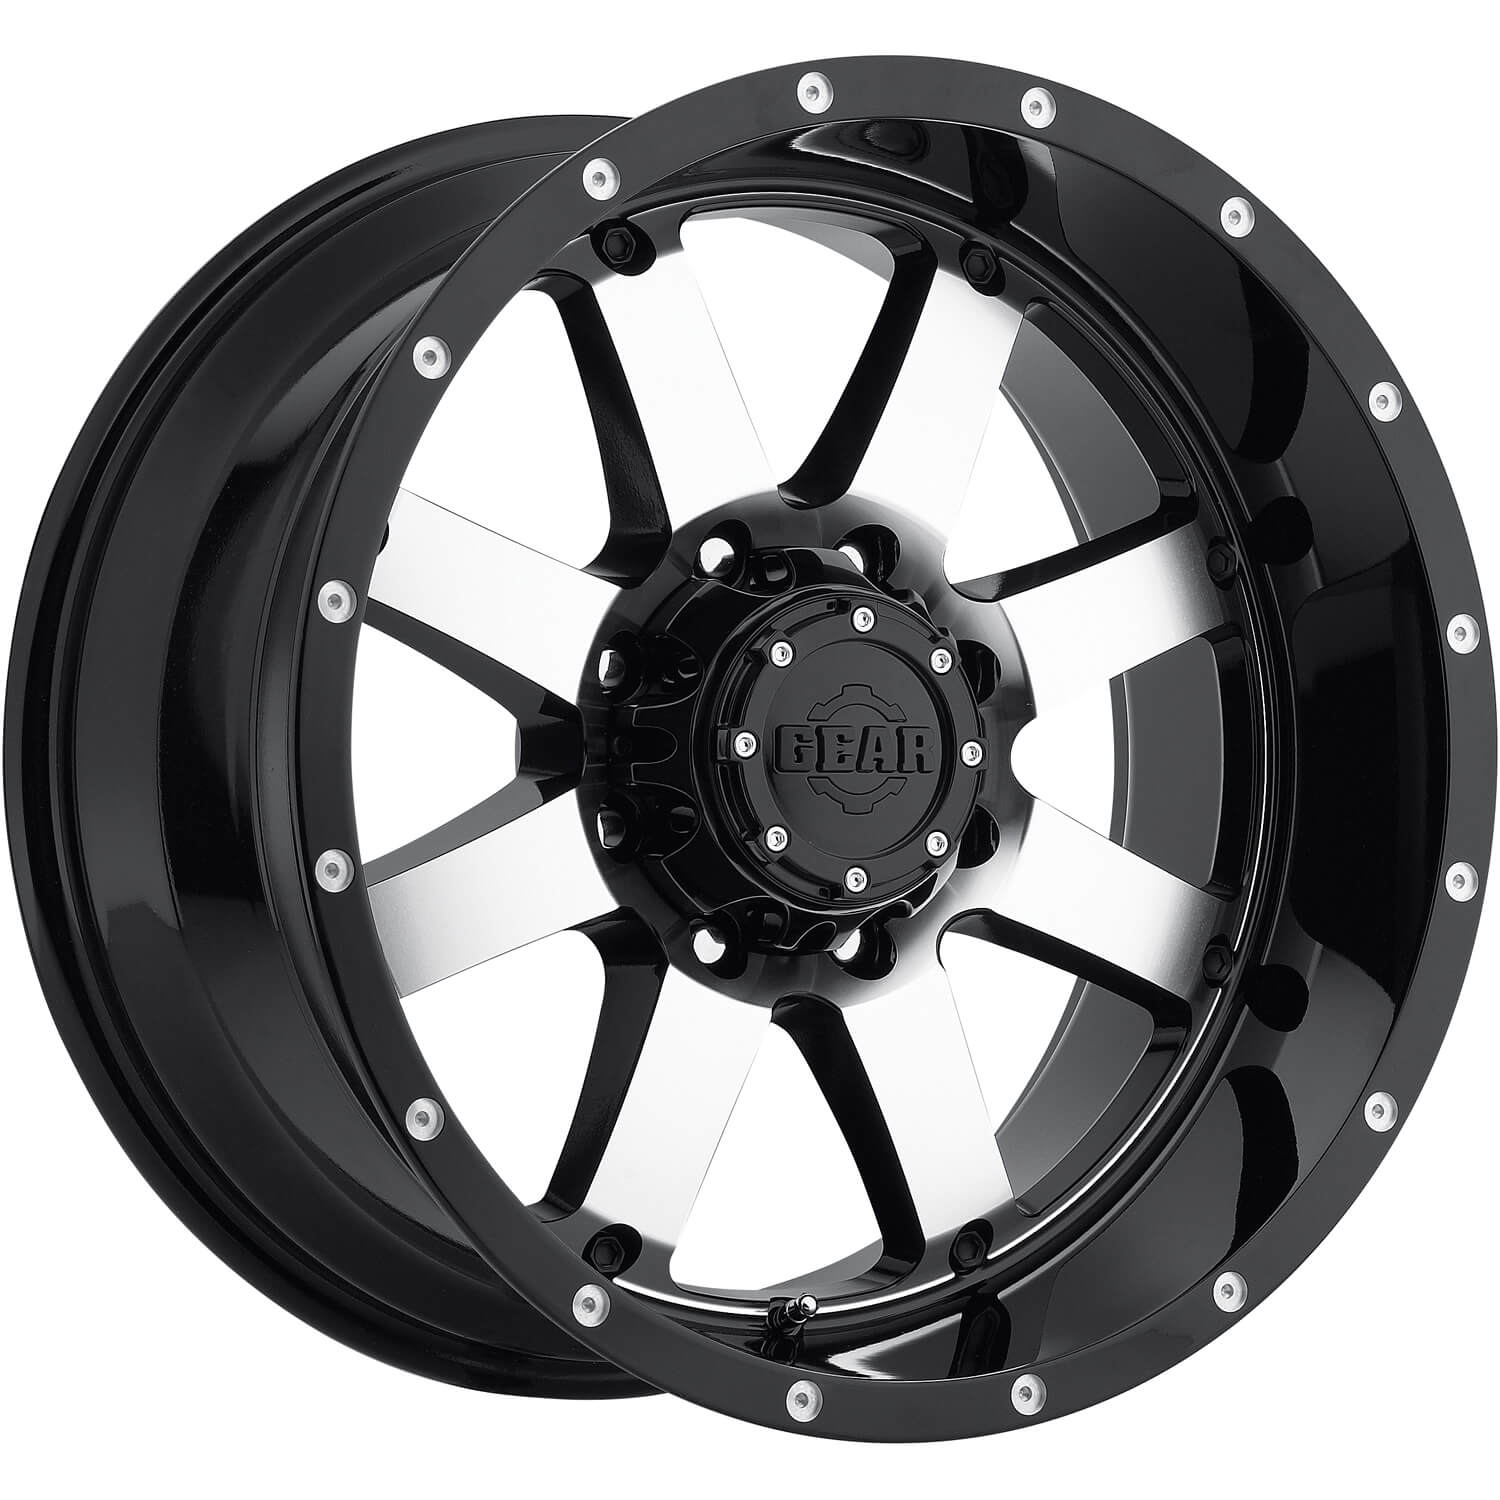 Gear Alloy Big Block 17x9 12 Custom Wheels